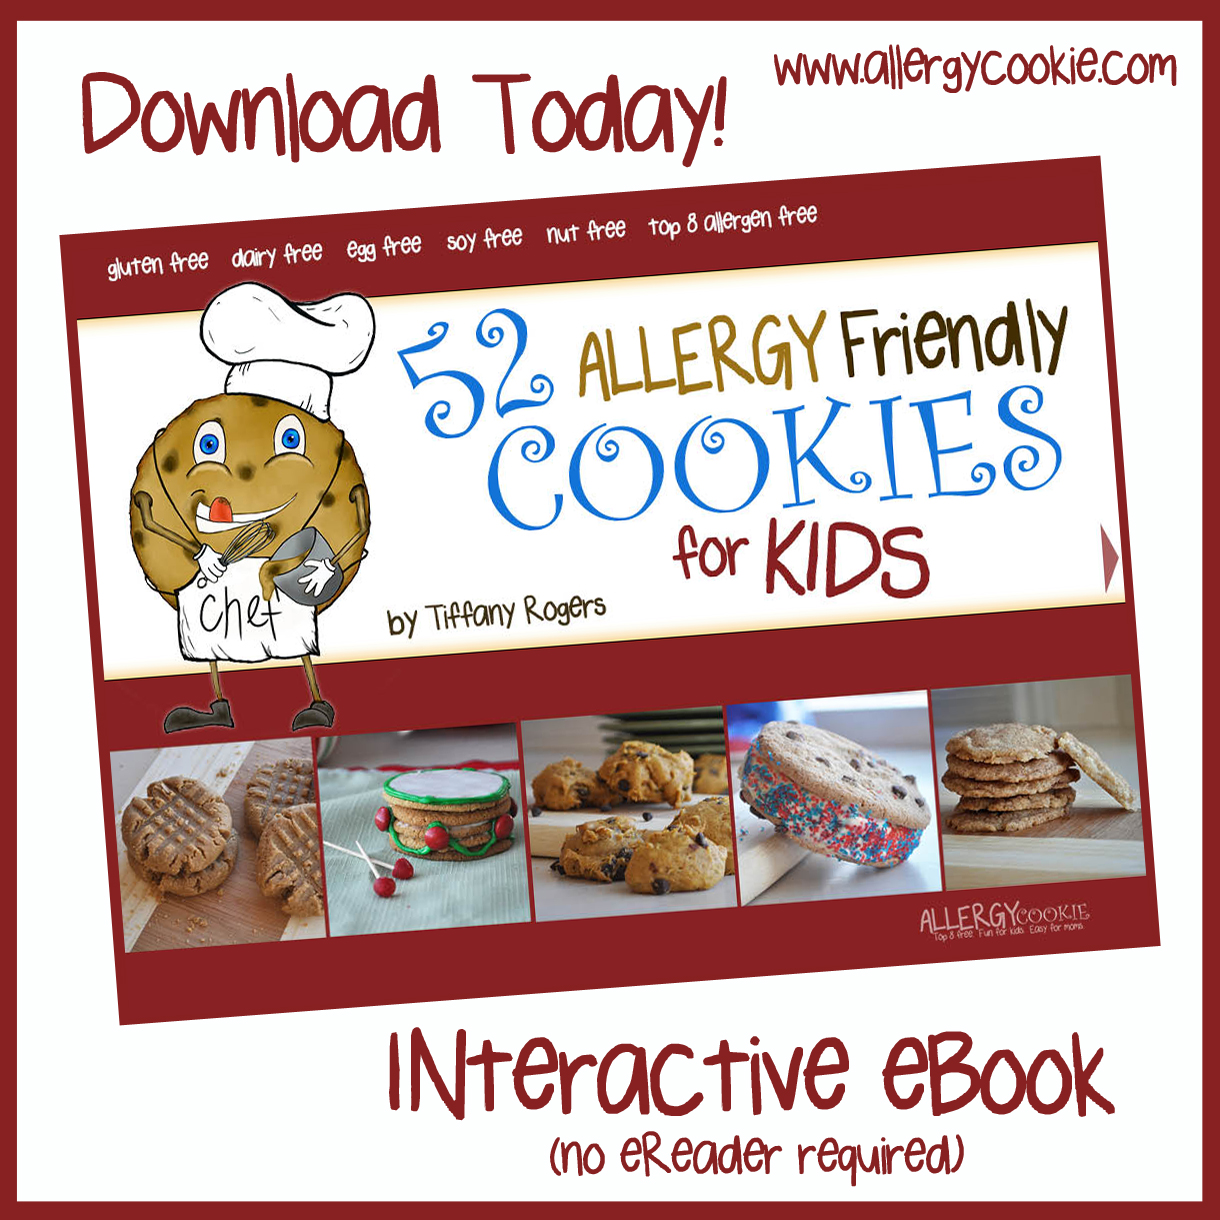 Allergy cookie ebook 52 allergy friendly cookies for kids 599 forumfinder Images